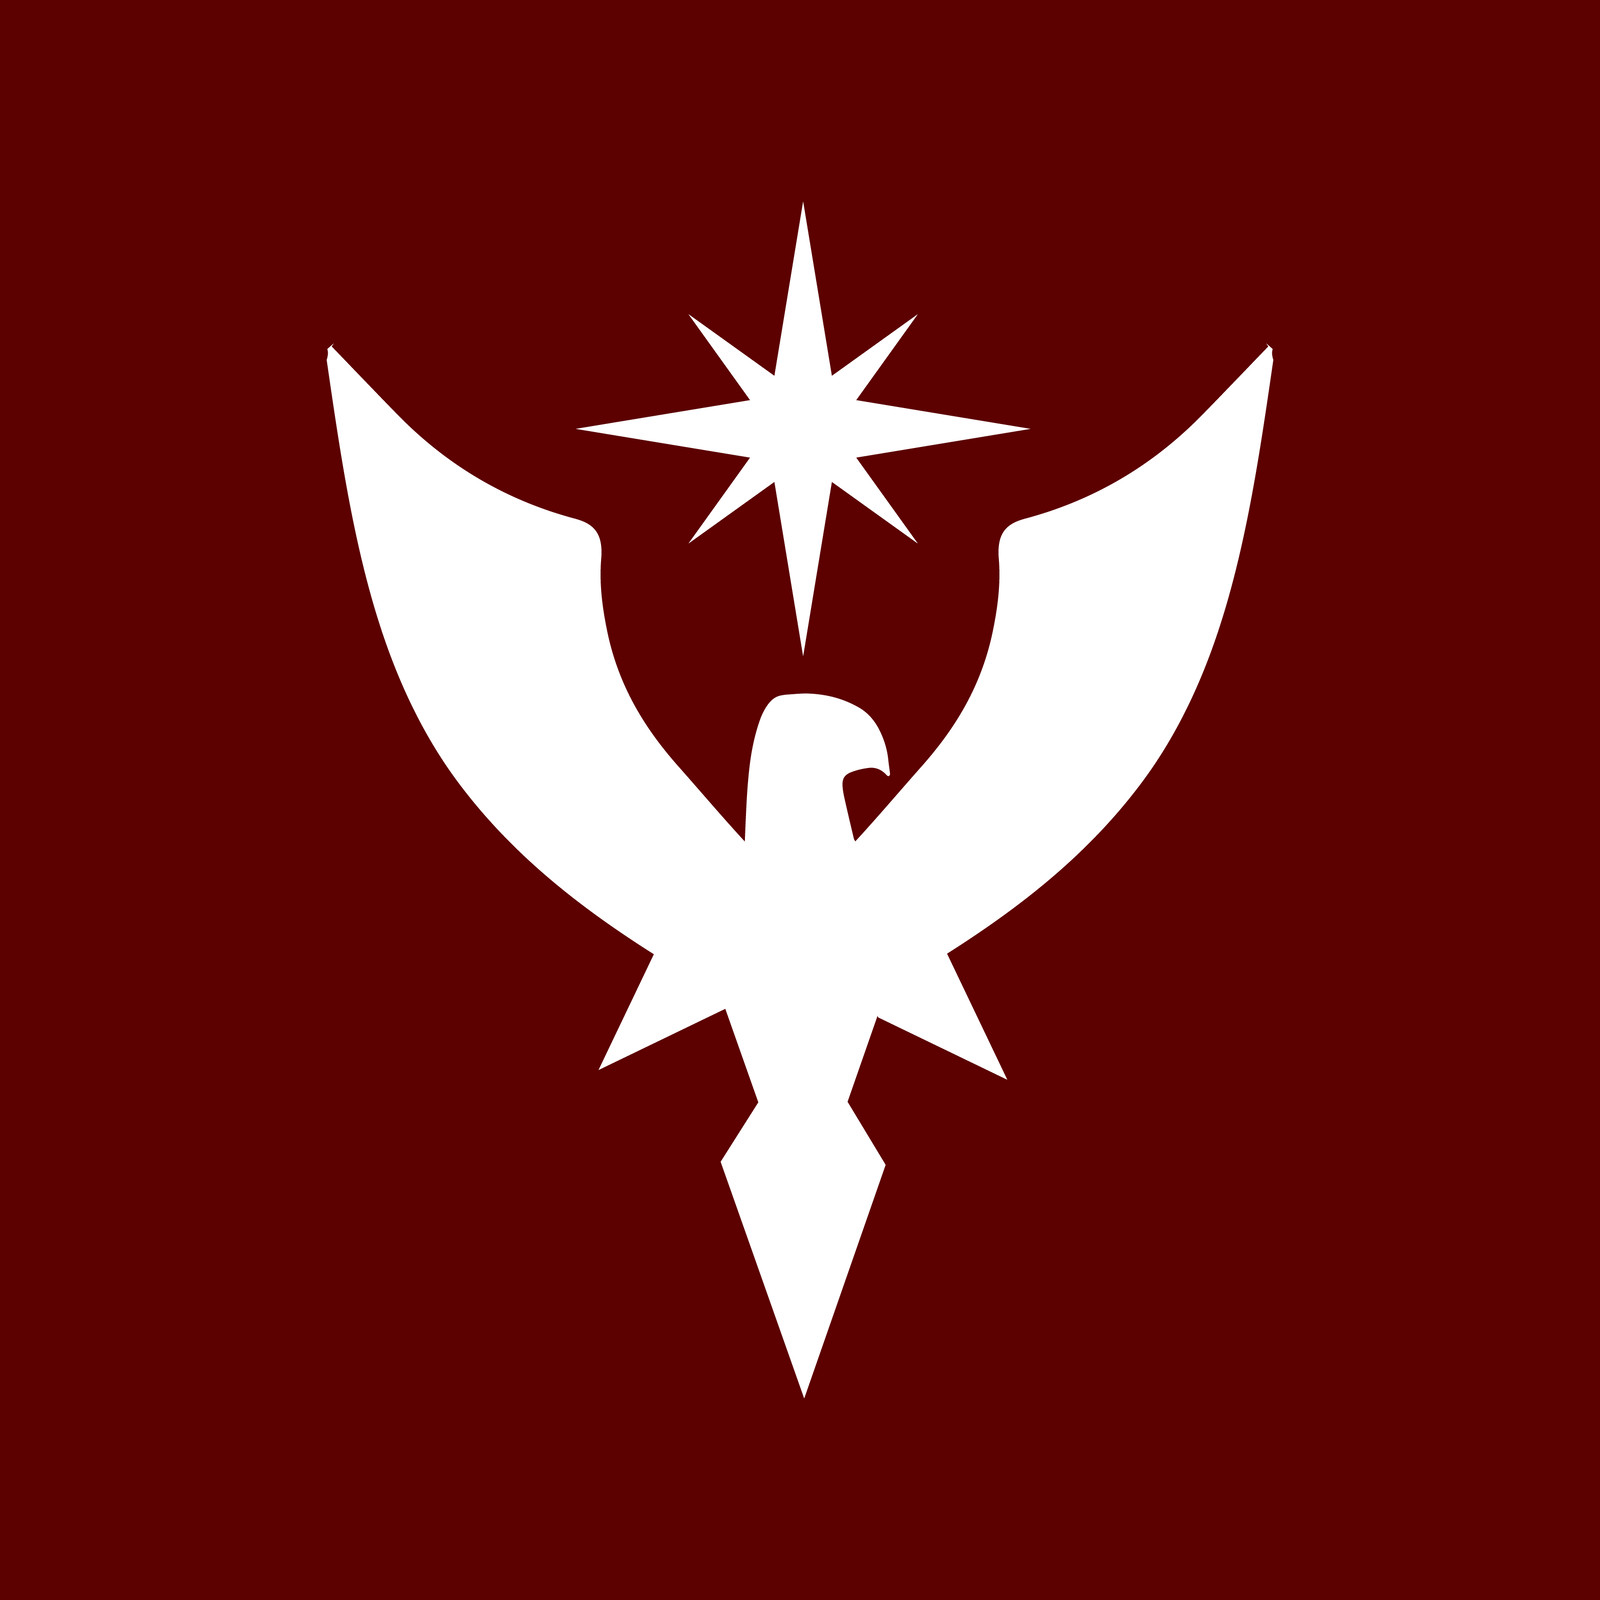 The insignia of the Altair Empire (2015)